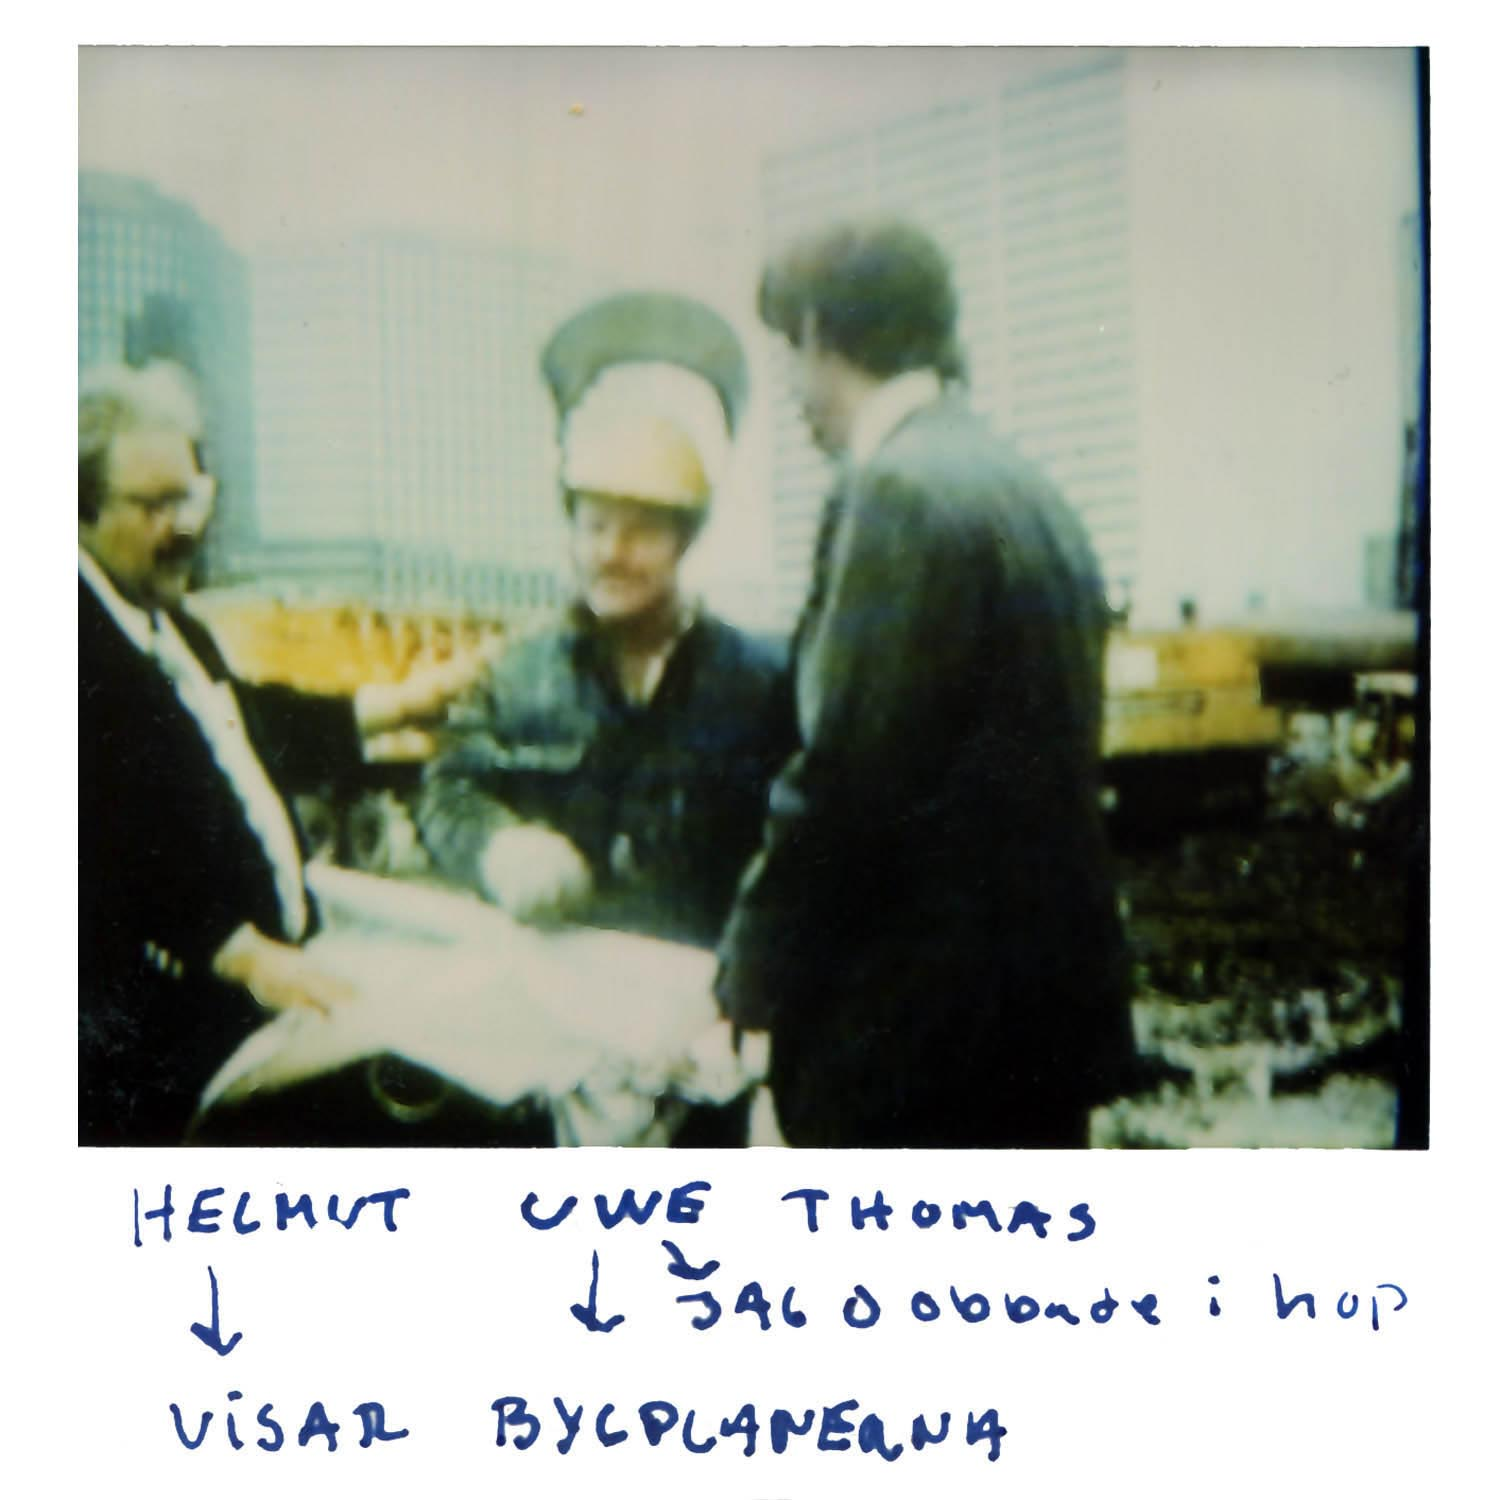 Helmut, Uwe, Thomas are the guys i  livedtogether with  They showed some blueprints